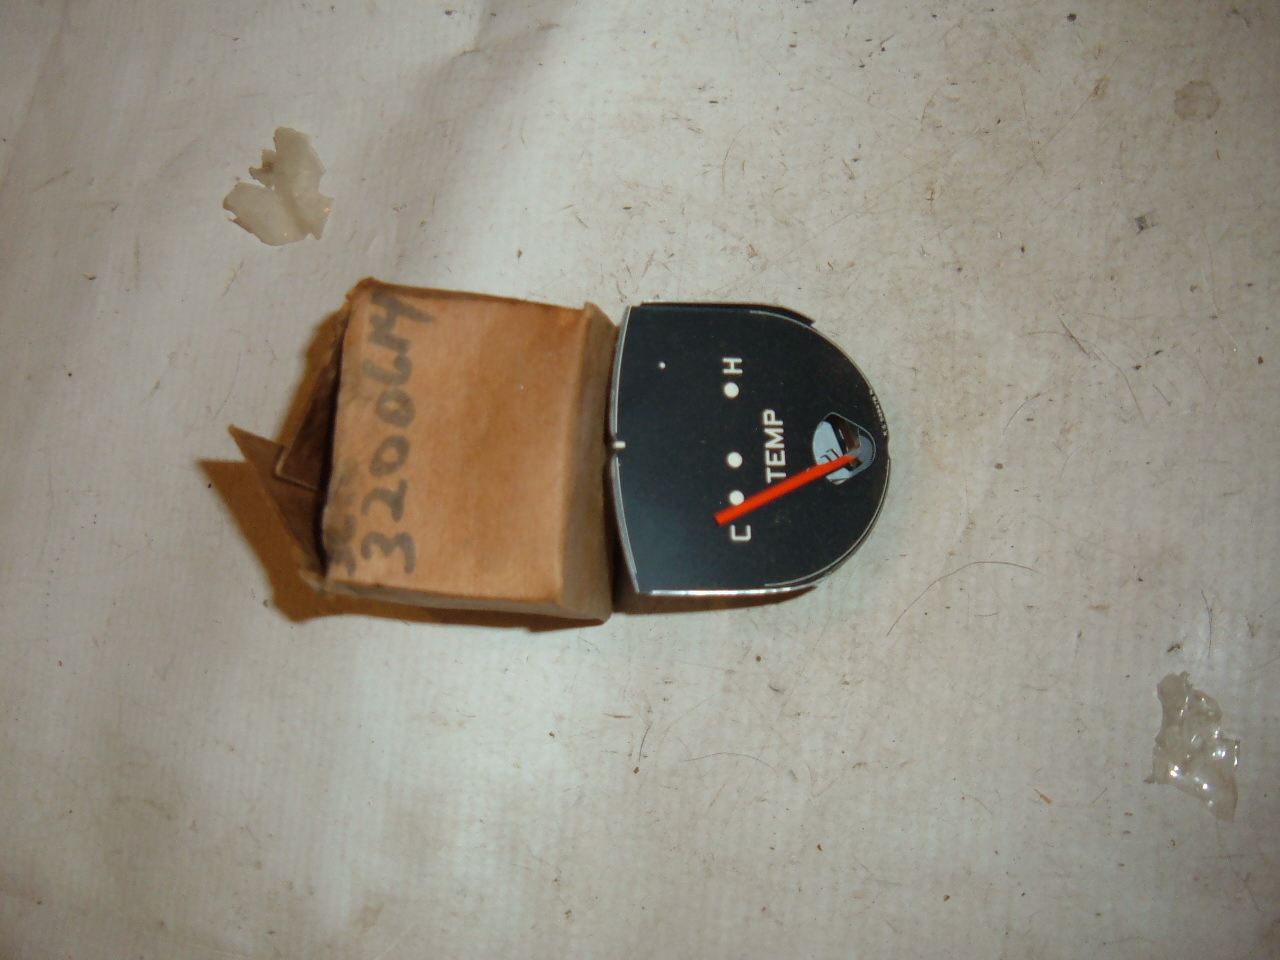 1958 ambassador rambler temperature gauge dash unit nos # 3200614 (z 3200614)